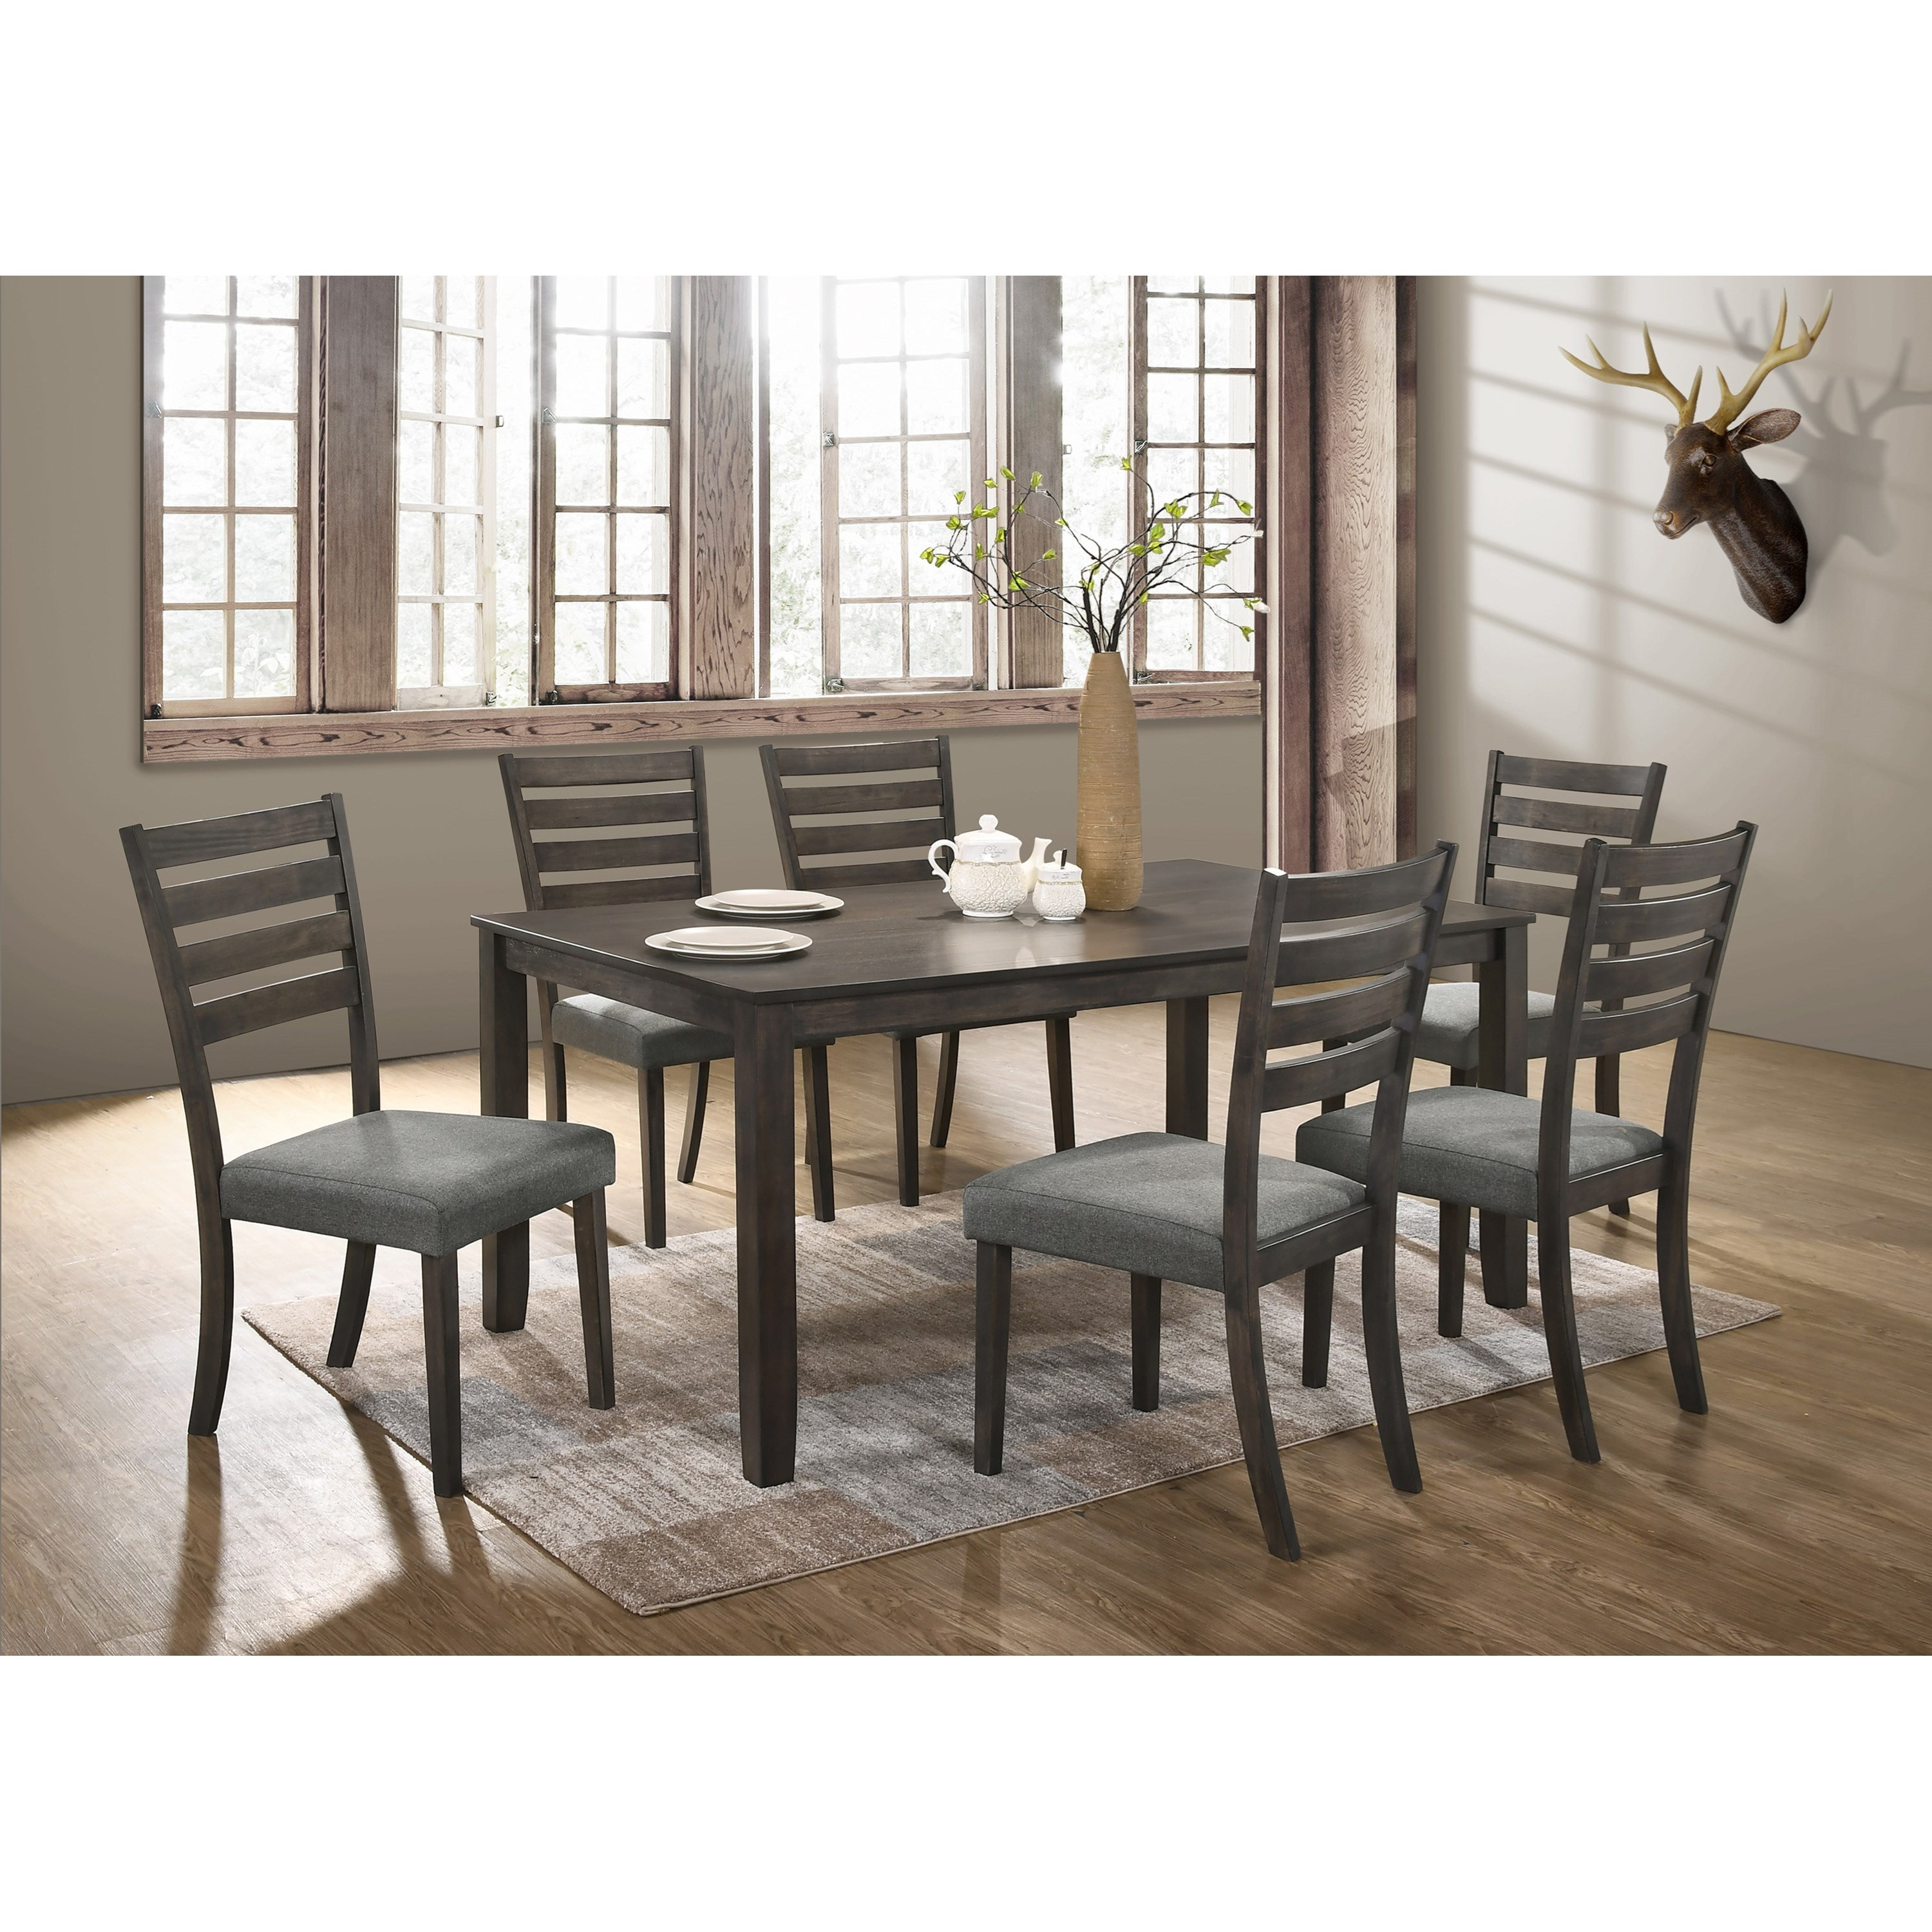 Crown Mark Aubery Dining 7 Piece Table and Chair Set - Item Number: 2340GY-T-3864+6X2340GY-S